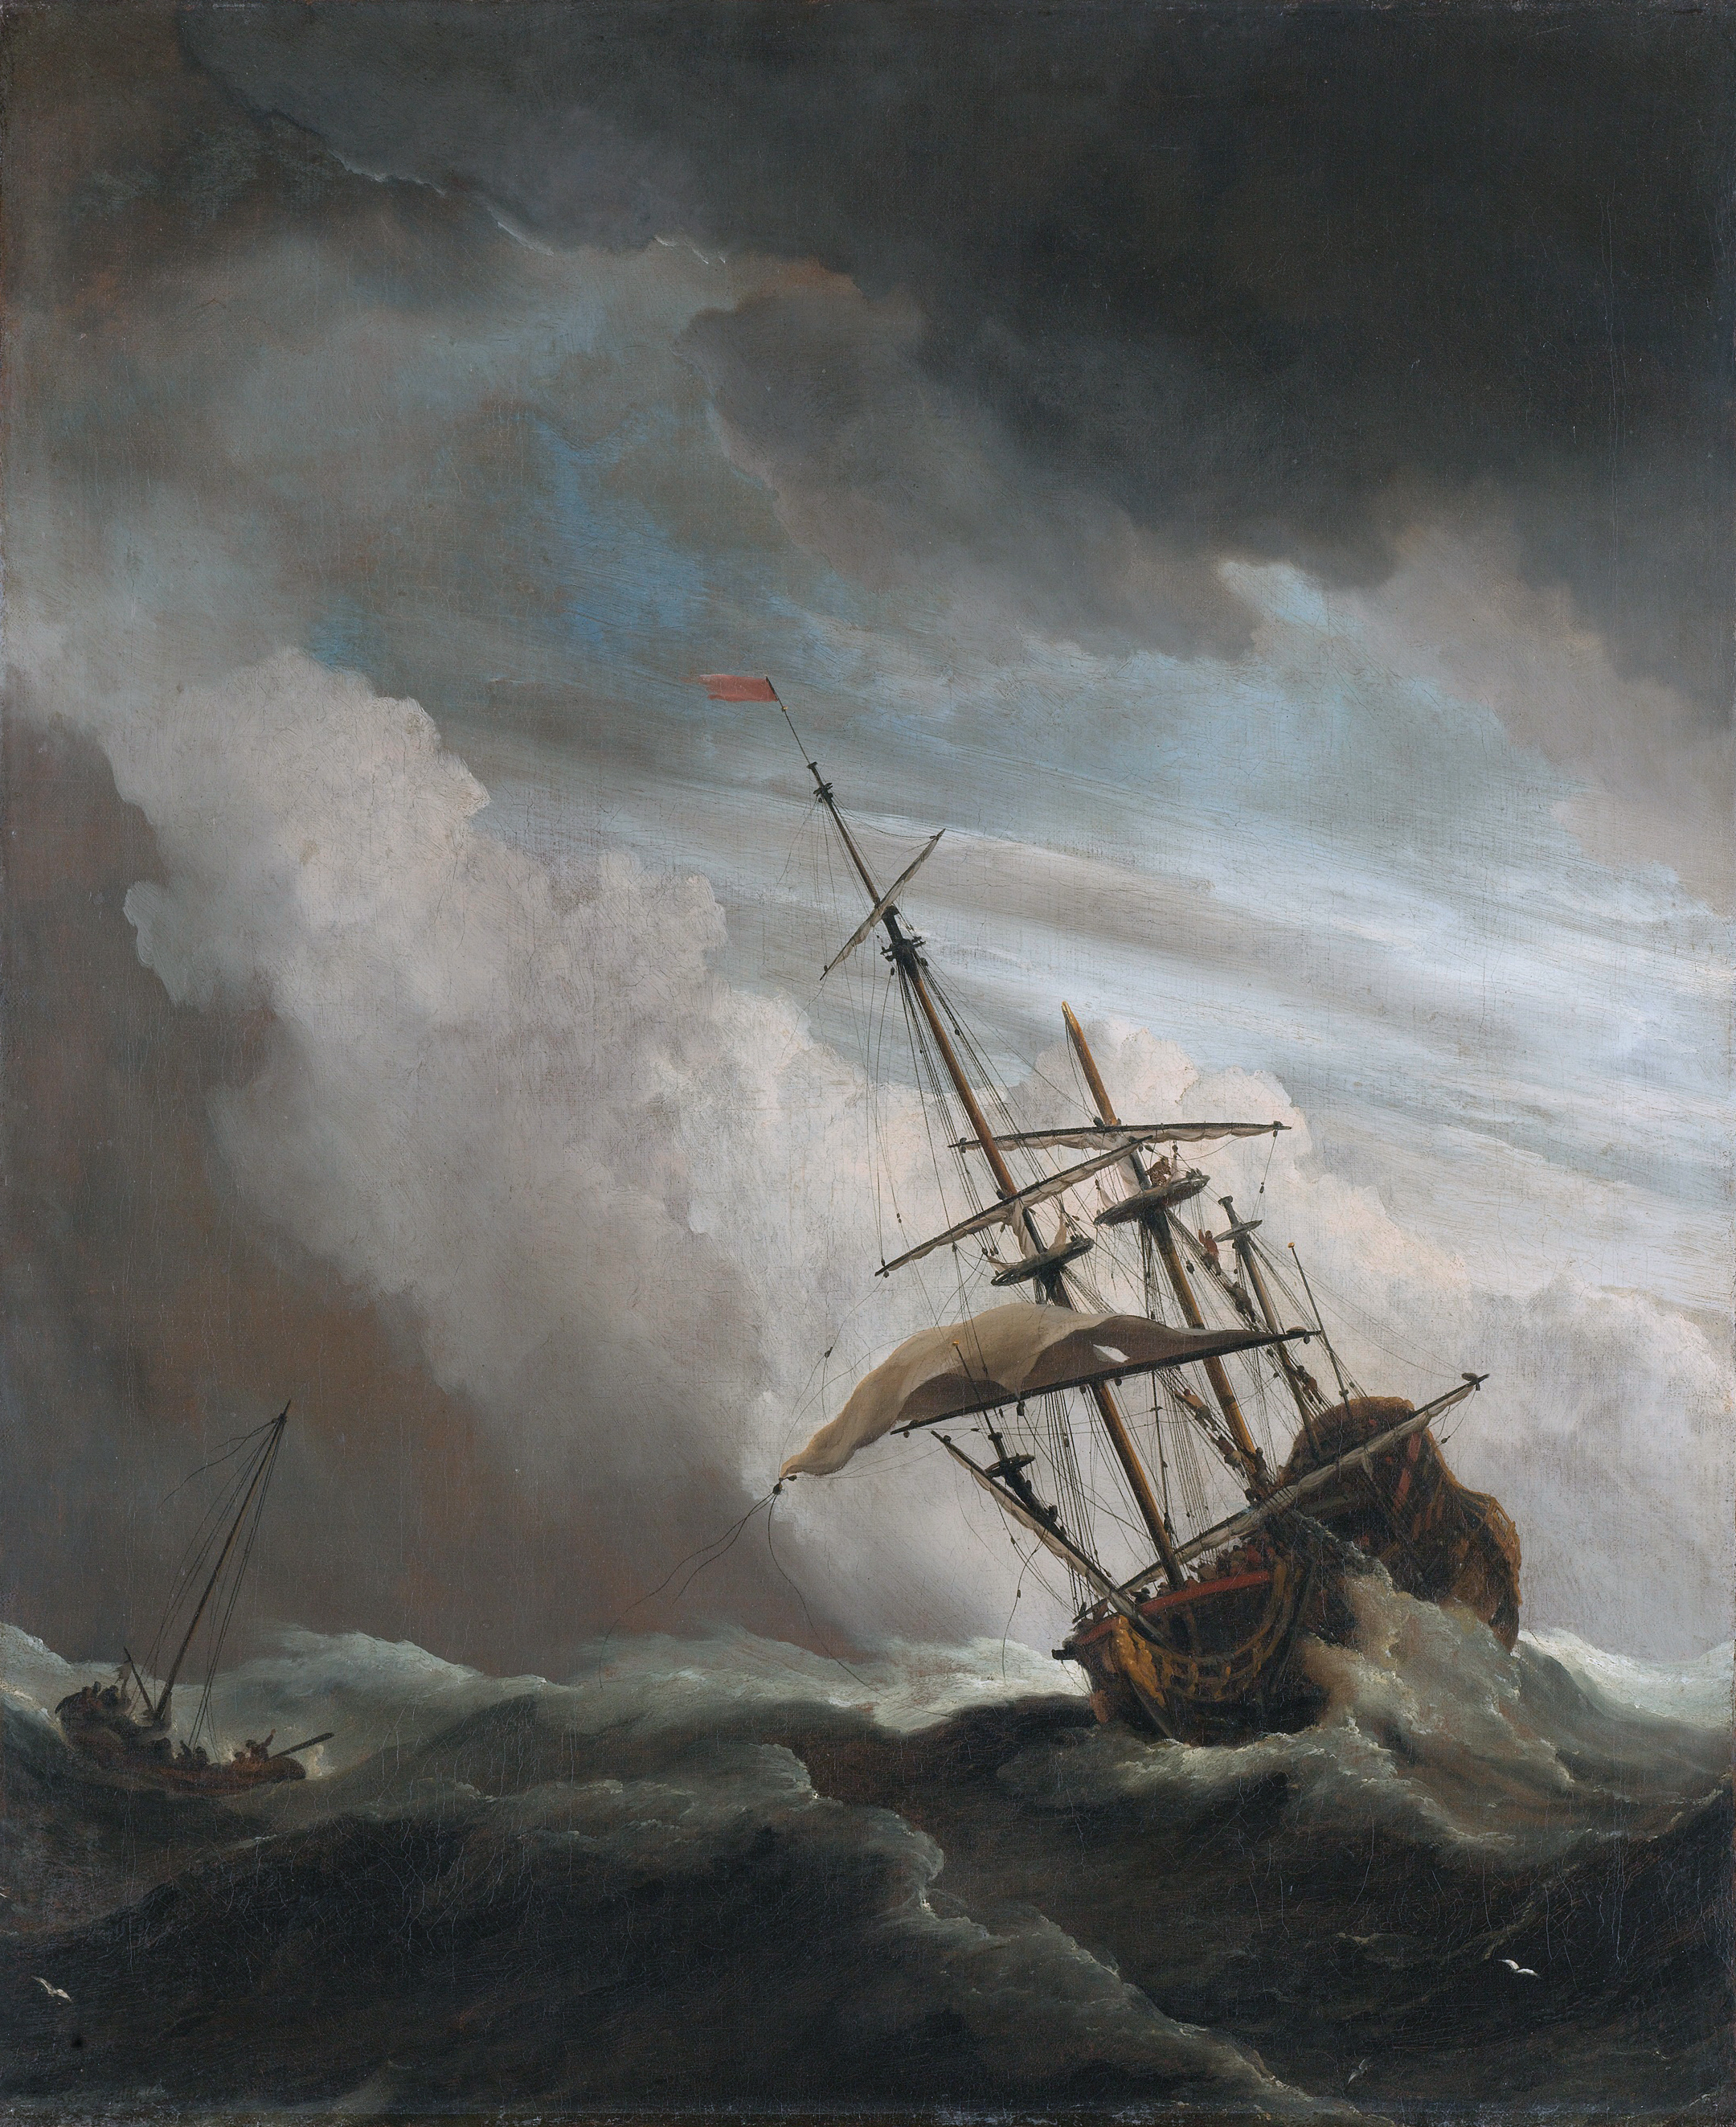 filede windstoot a ship in need in a raging storm